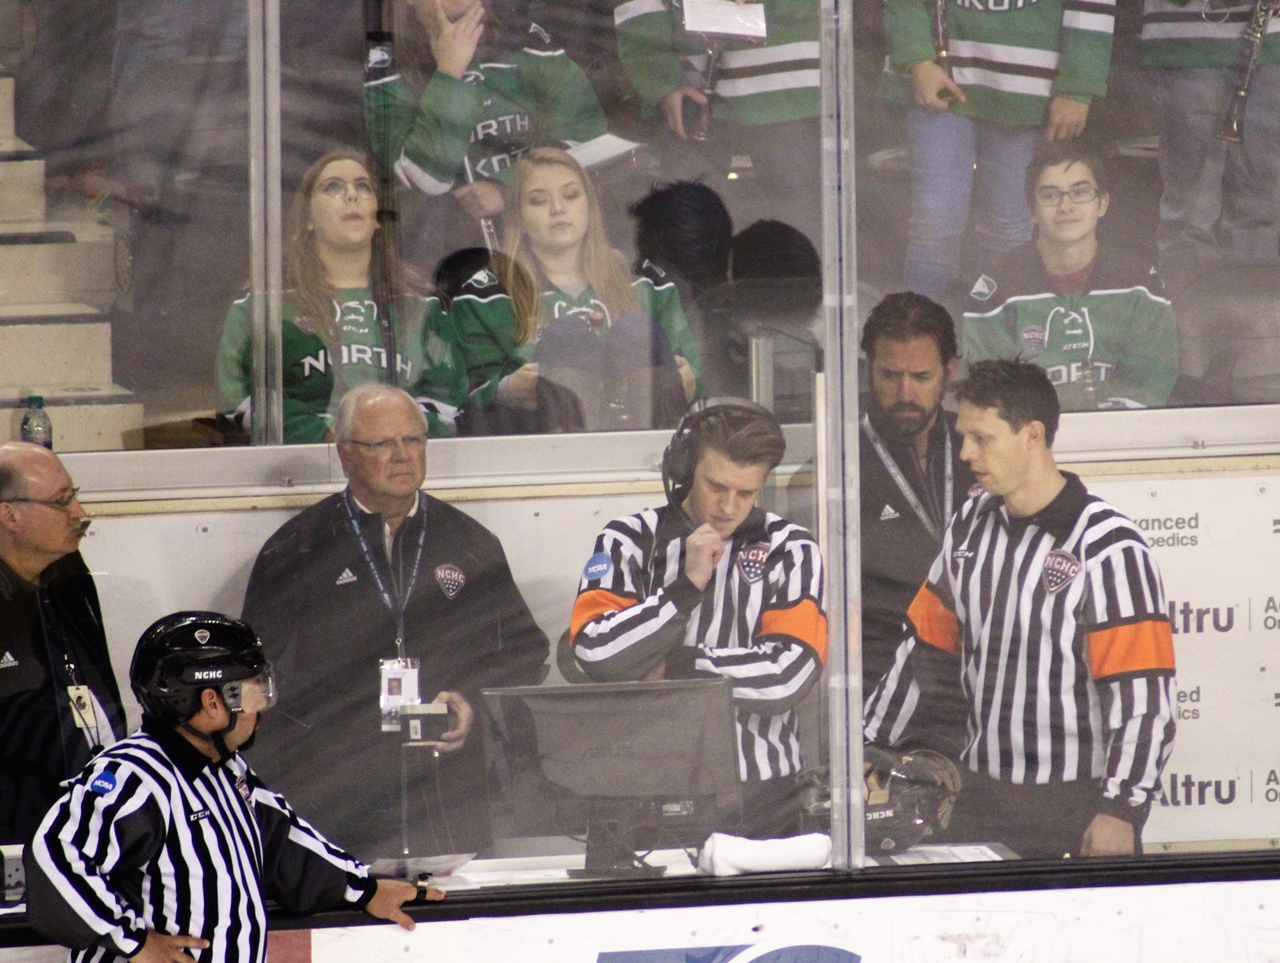 College Hockey: Ice Hockey Rules Committee Proposes 3-On-3 Overtime Format Change